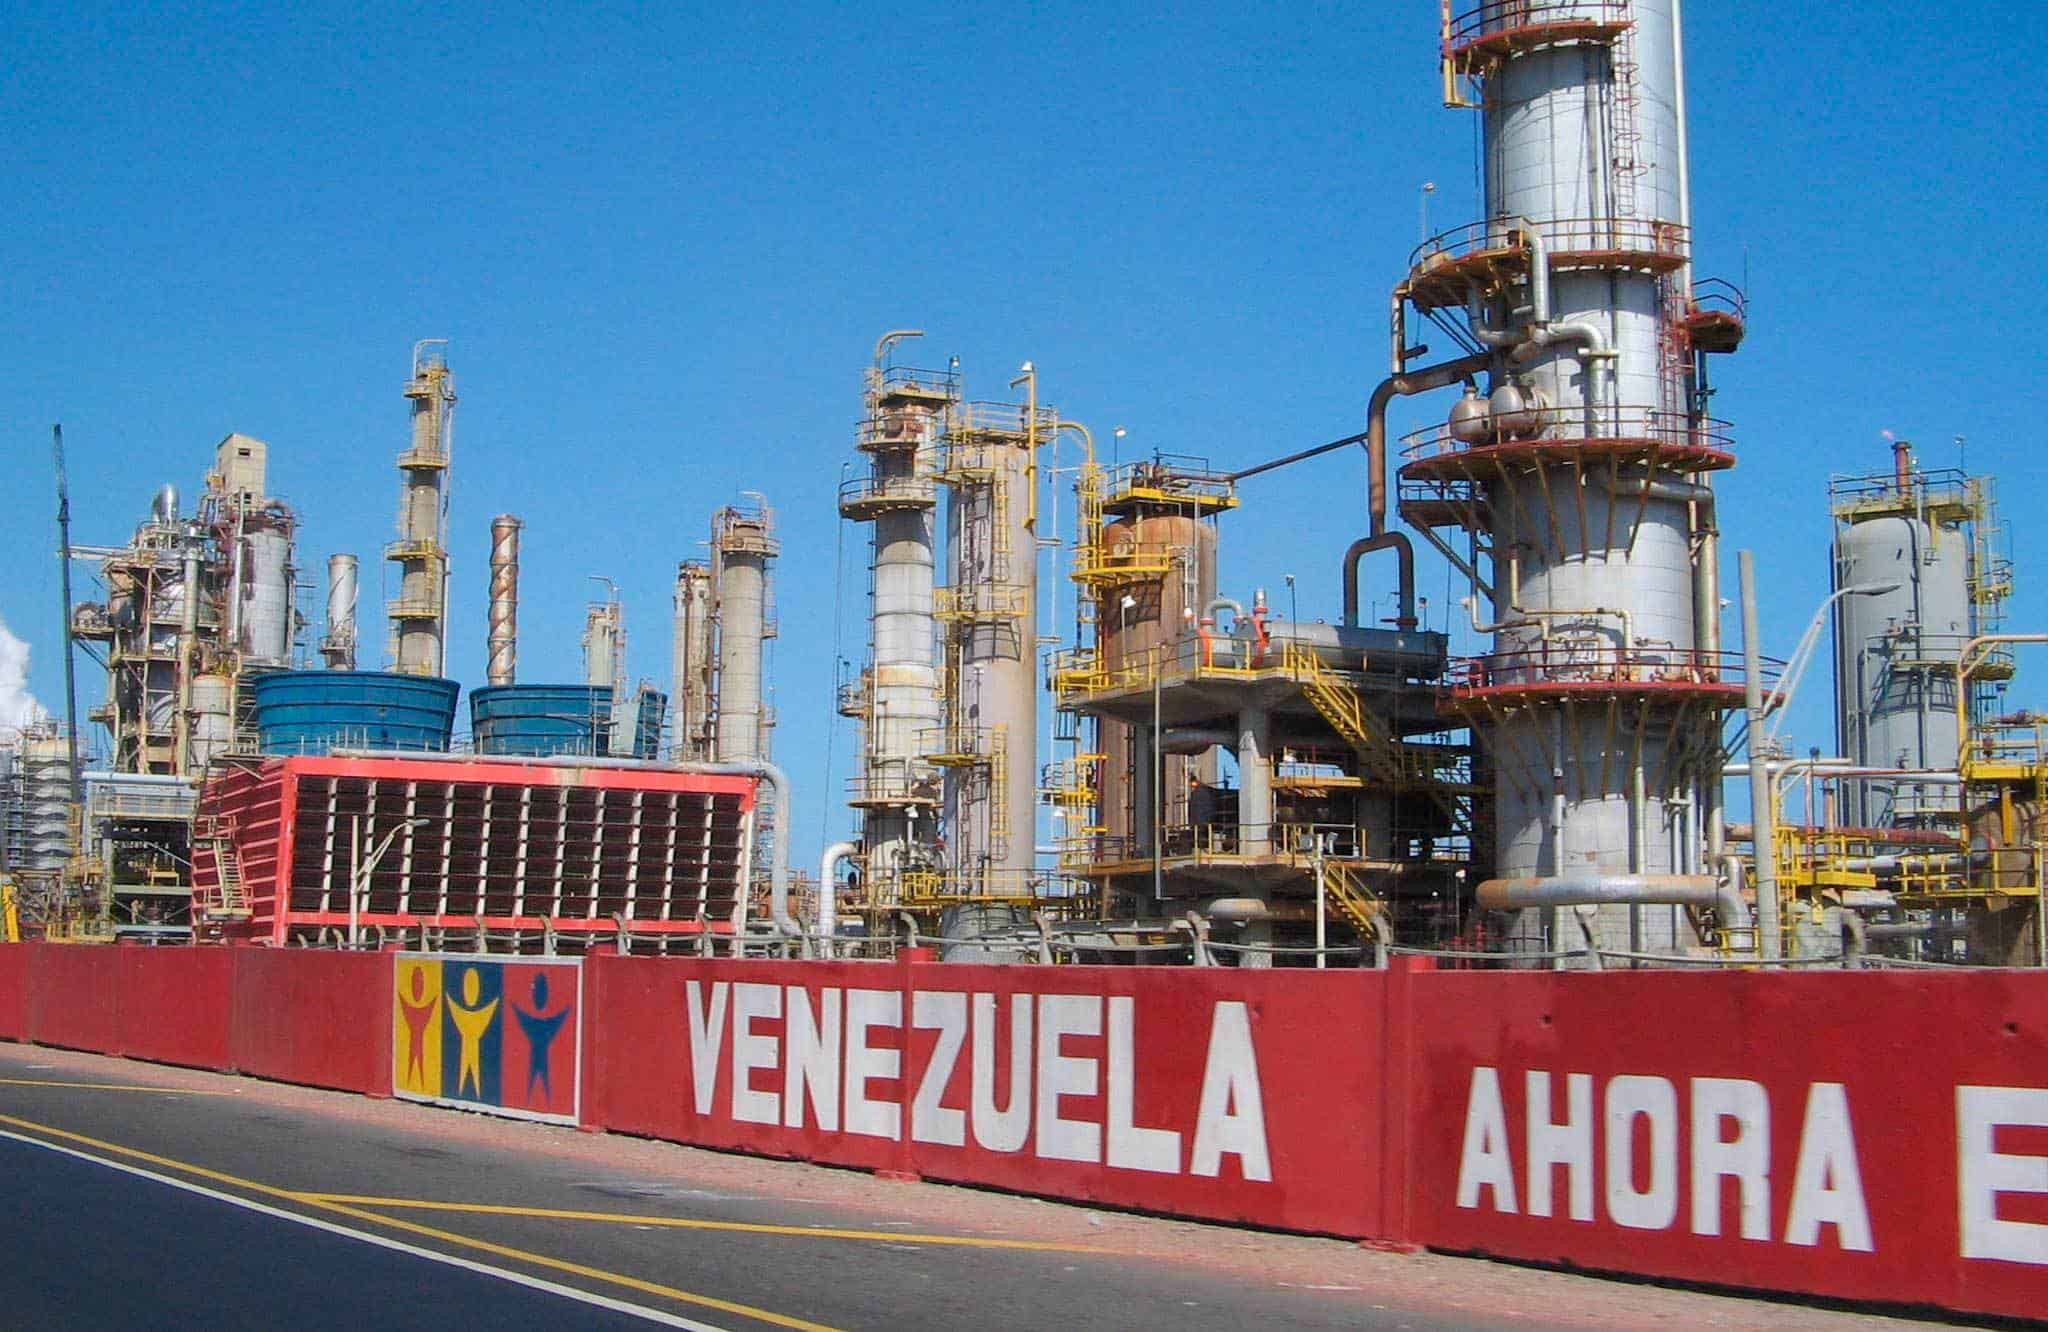 Can Venezuela make a transition from oil to clean energy without social collapse?